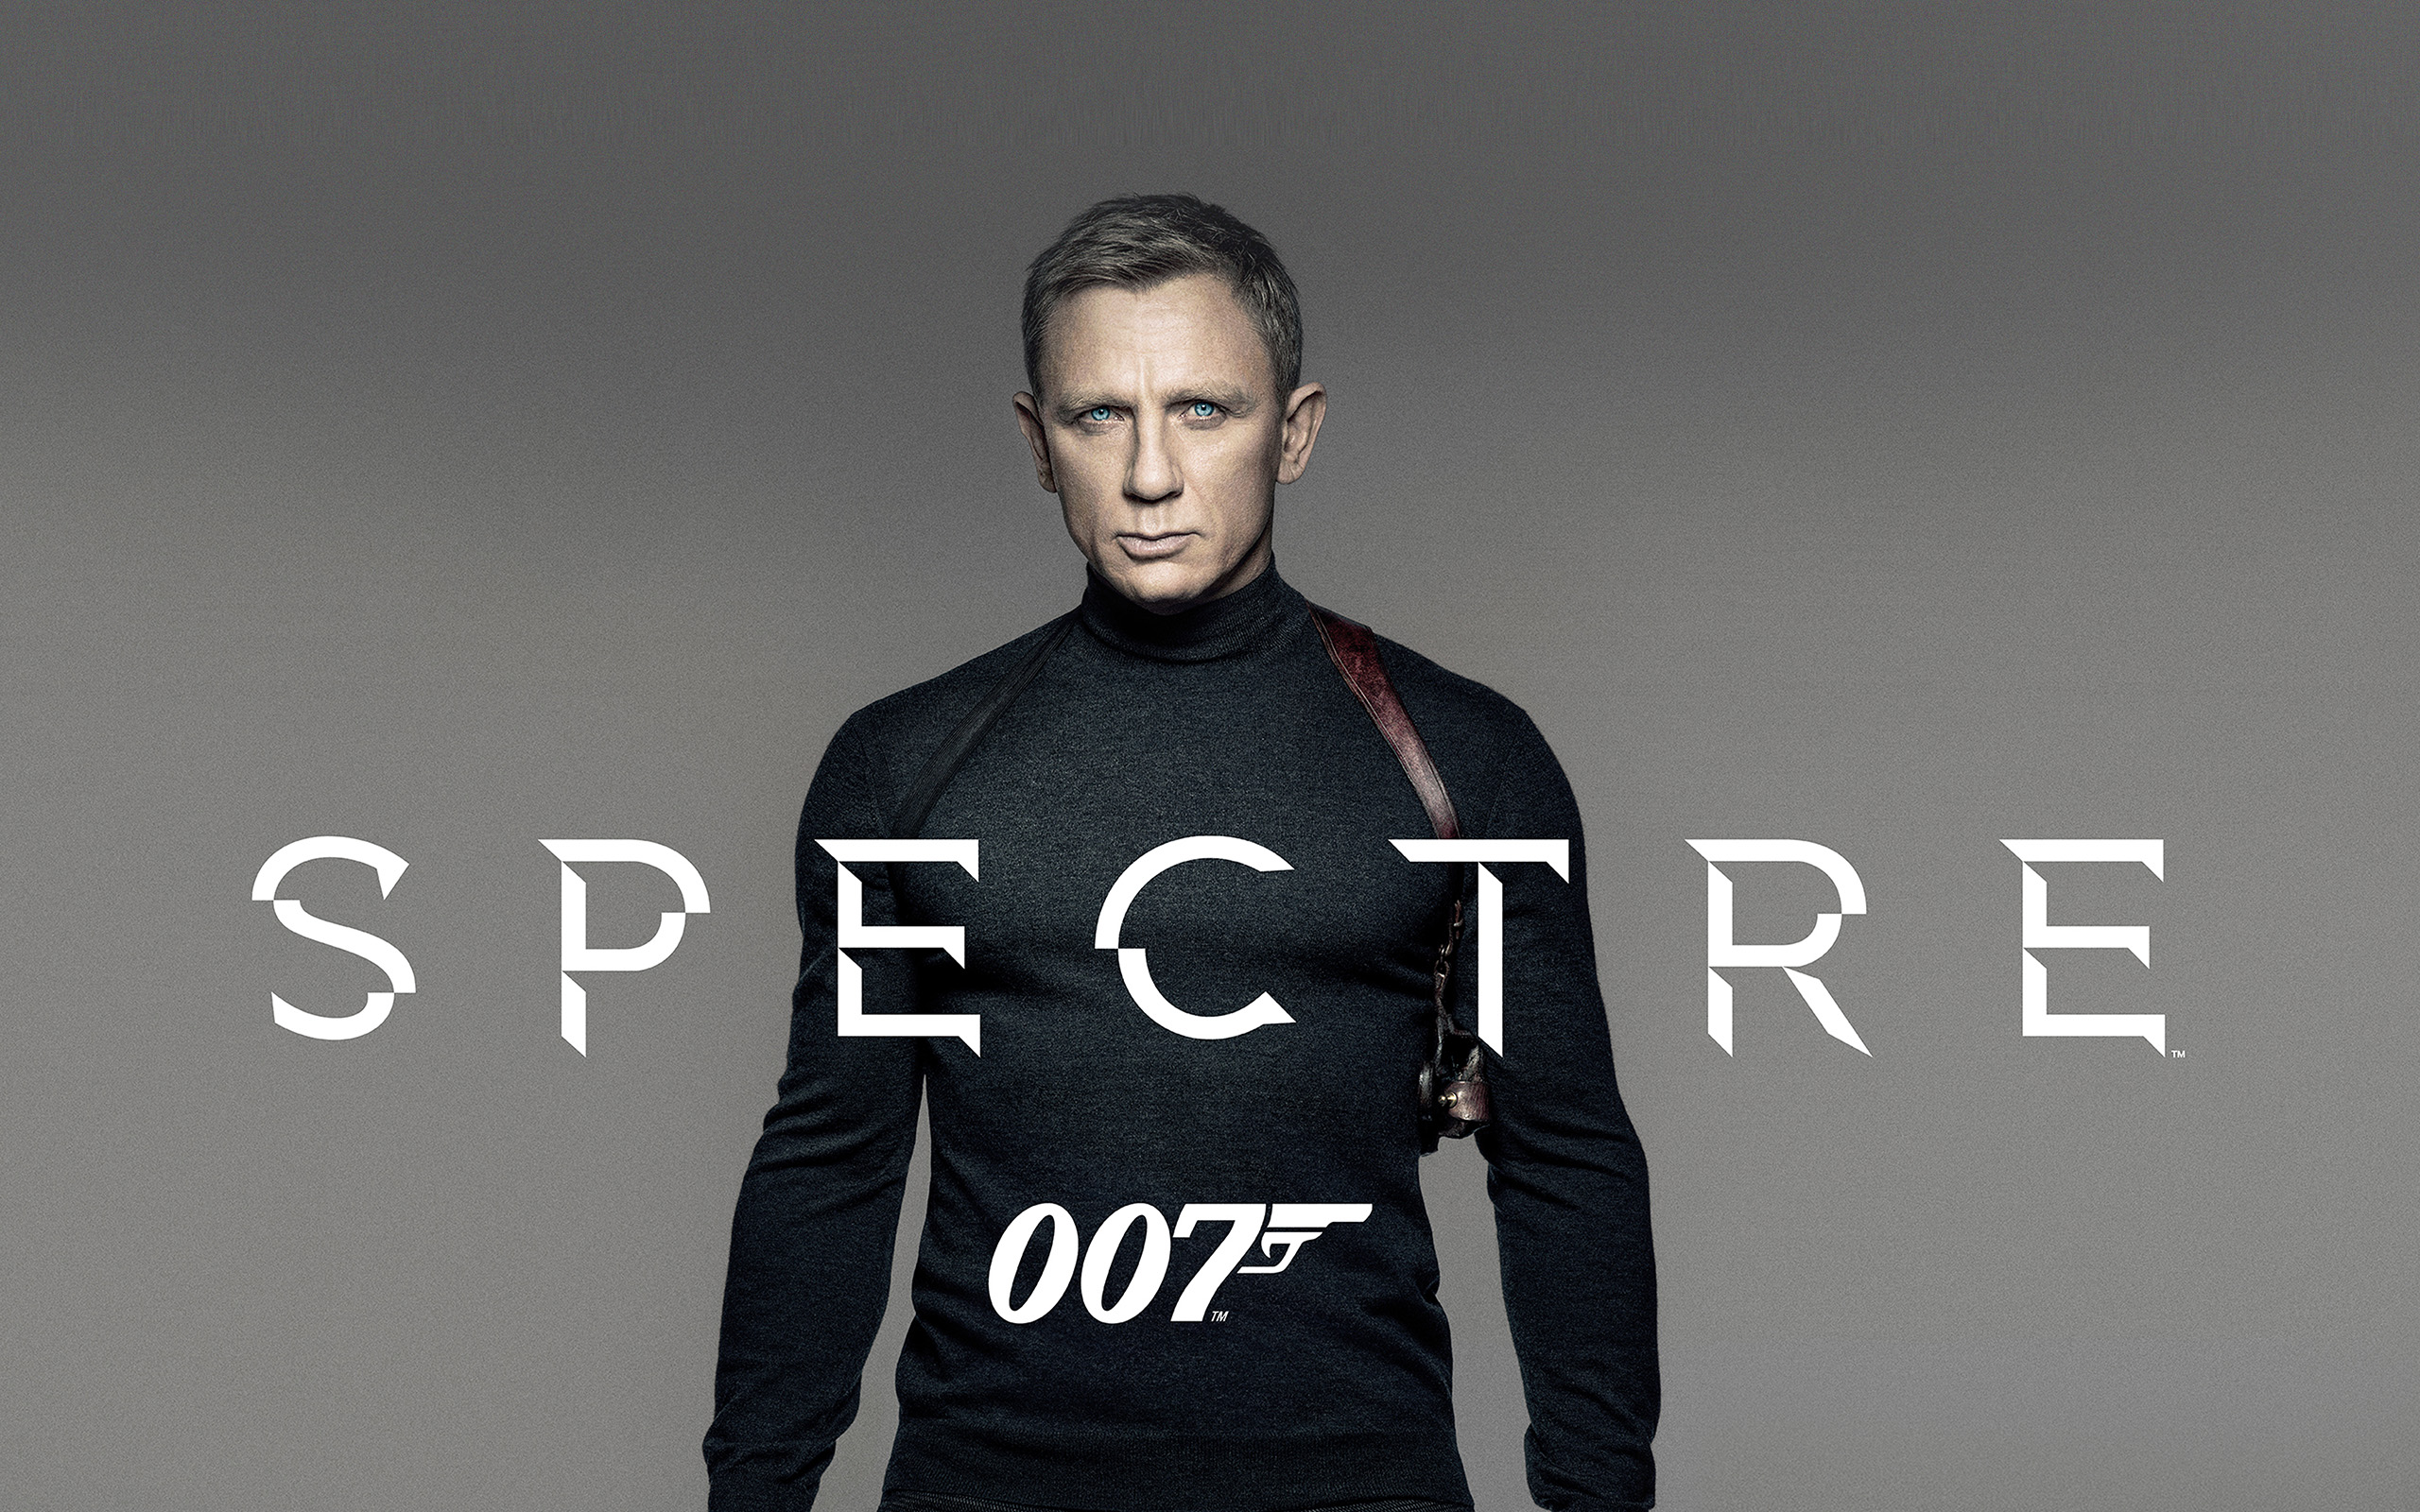 an45-james-bond-007-spectre-movie-film-poster - Papers.co